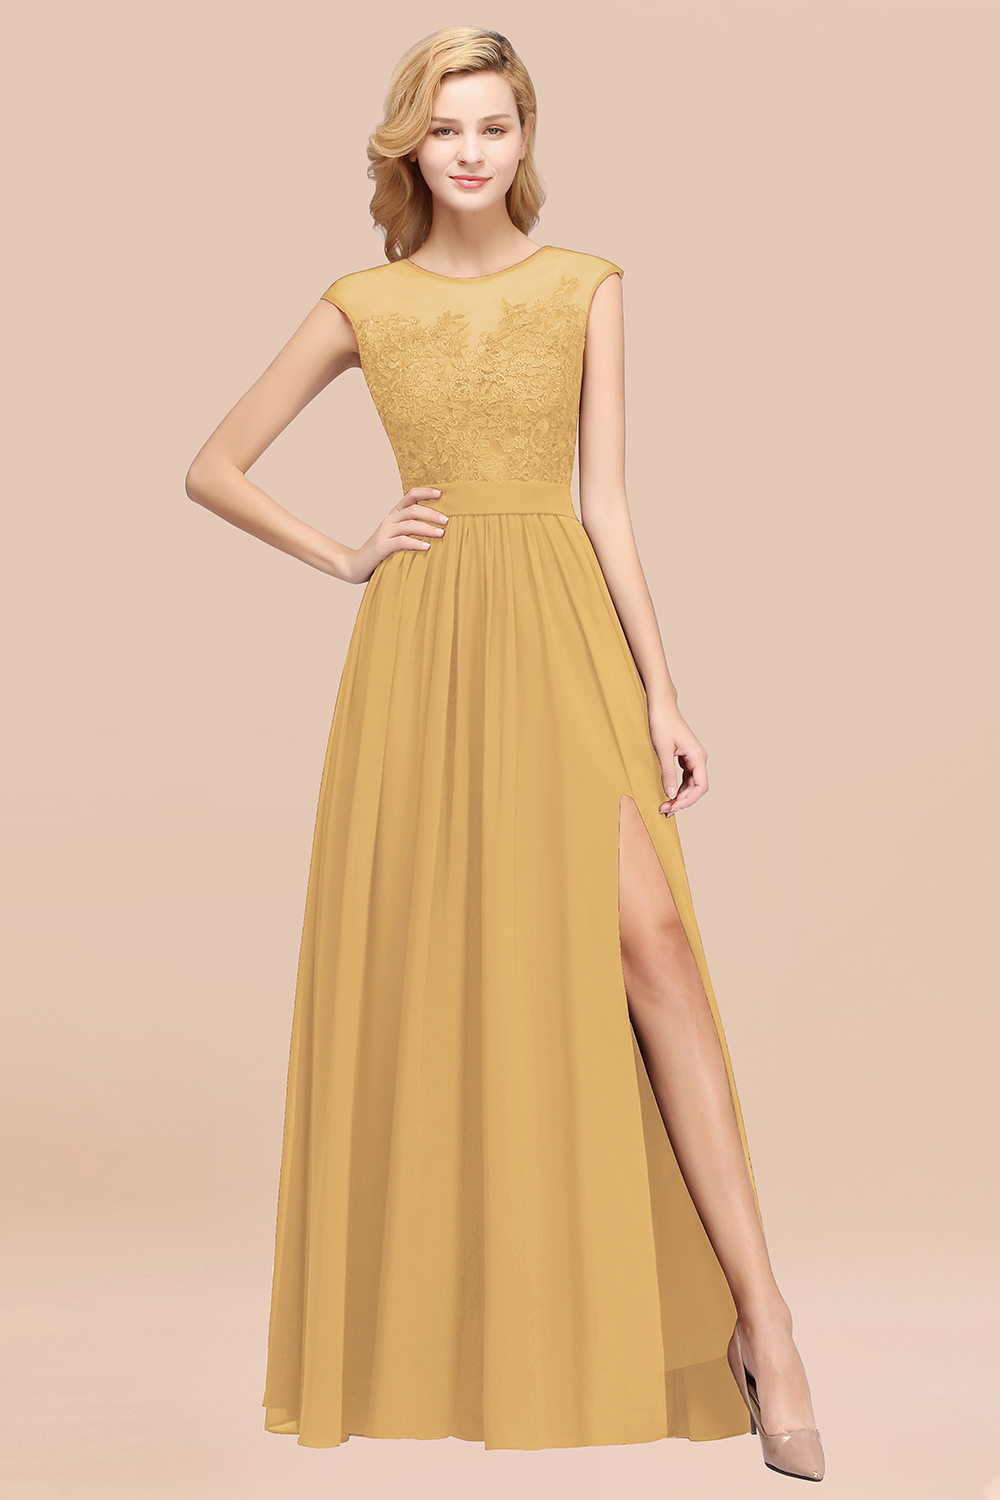 BMbridal Affordable Scoop Lace Appliques Yellow Bridesmaid Dresses with Slit